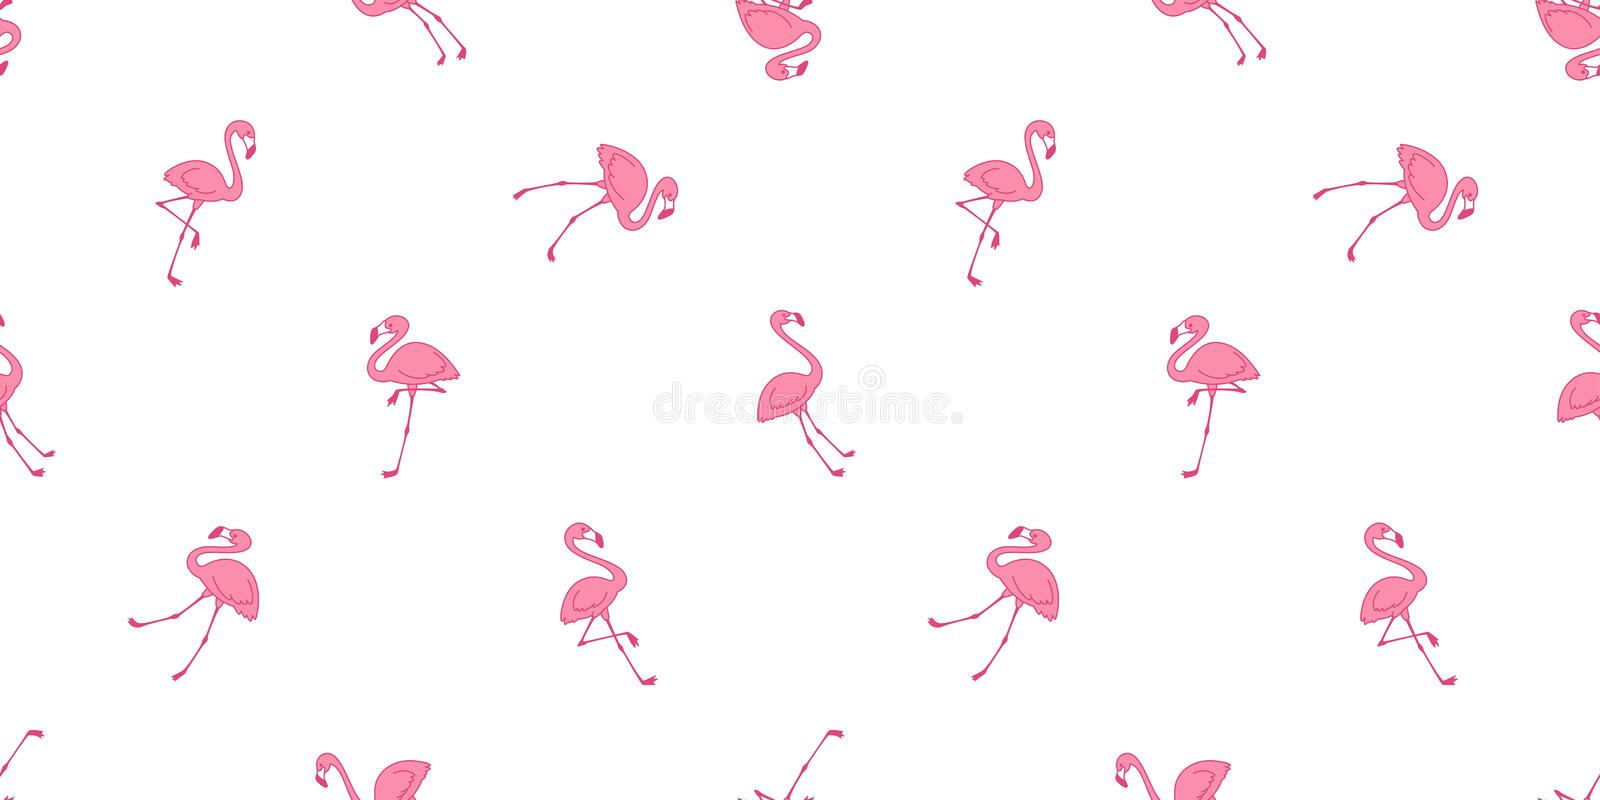 Illustration de papier peint de répétition de fond de tuile d'isolement par écharpe tropicale sans couture de flamants de rose de illustration de vecteur